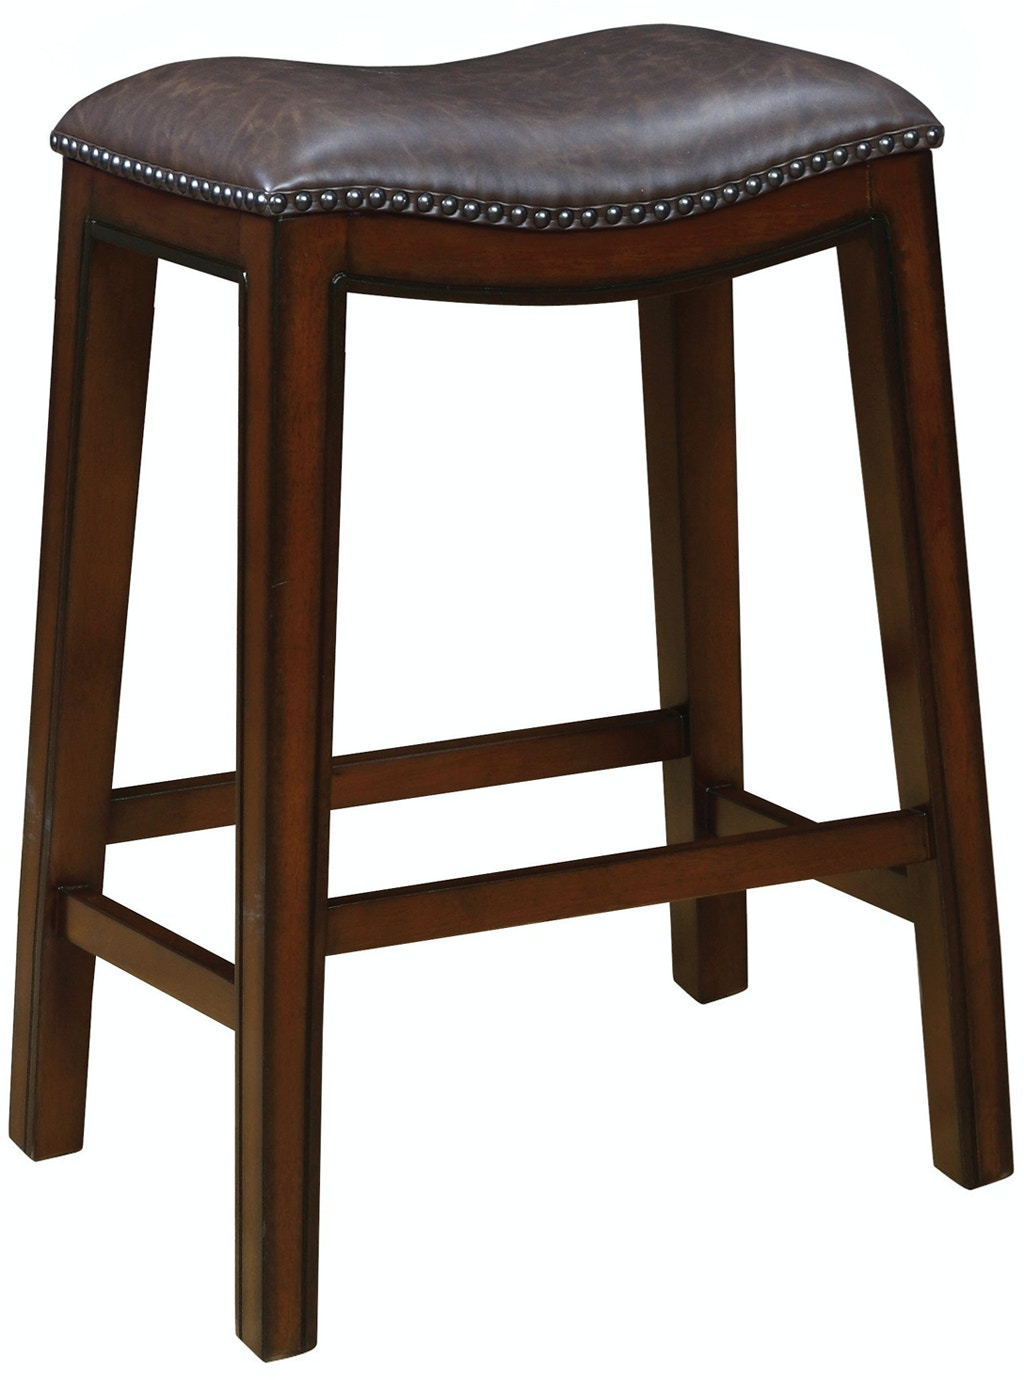 Coaster Co Of America Bar And Game Room Crispin Barstool